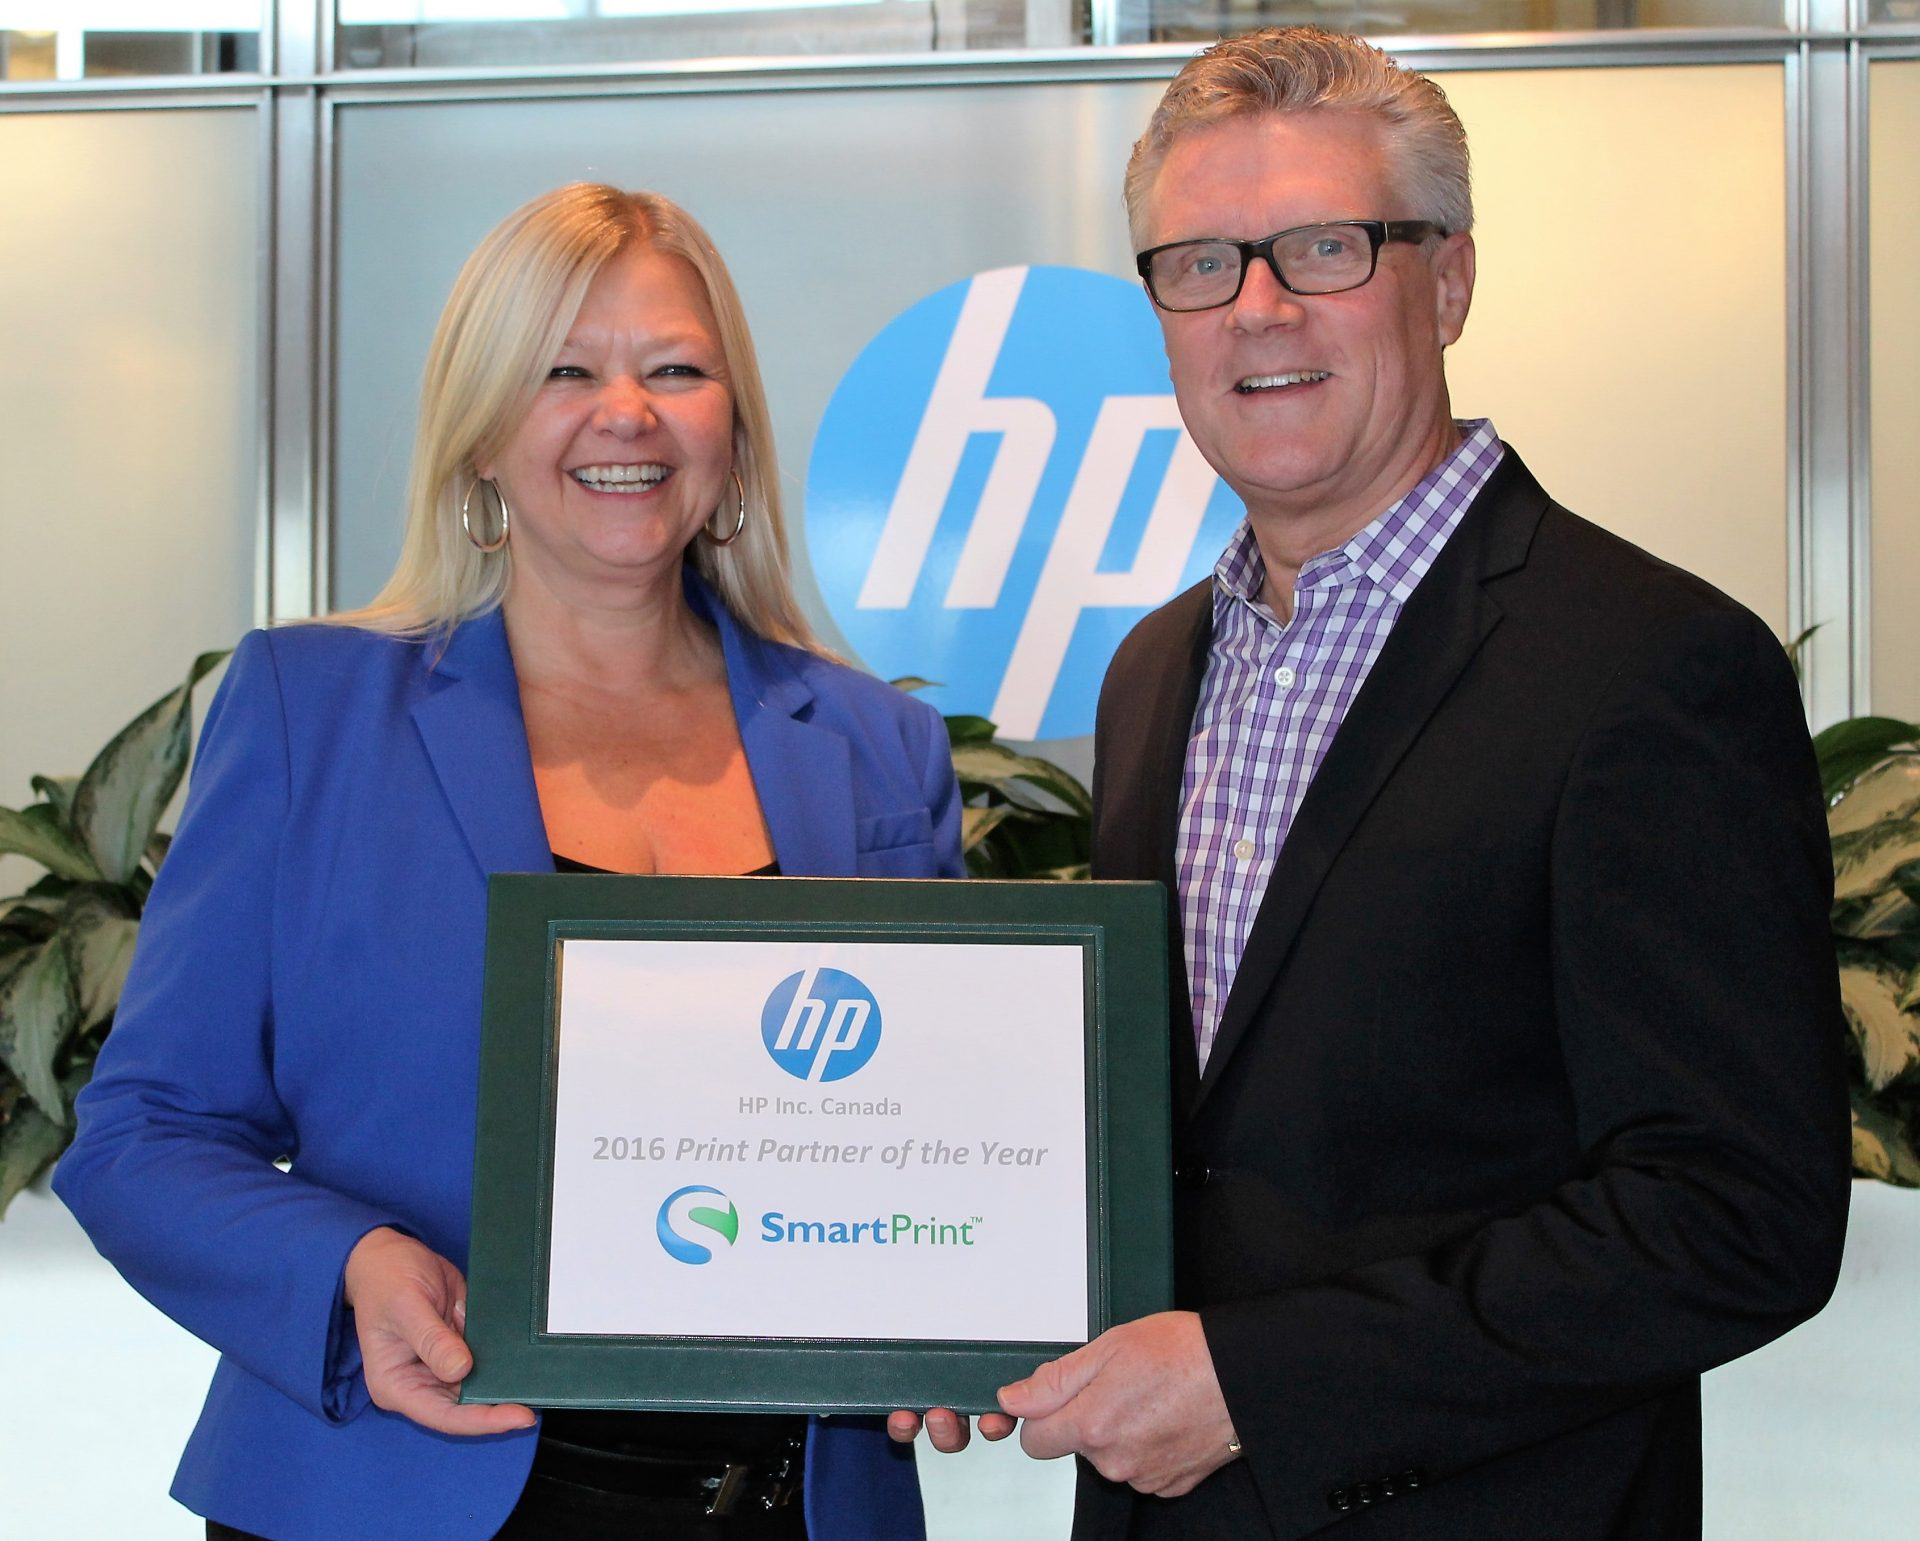 SmartPrint named HP's Print Partner of the Year for 2016